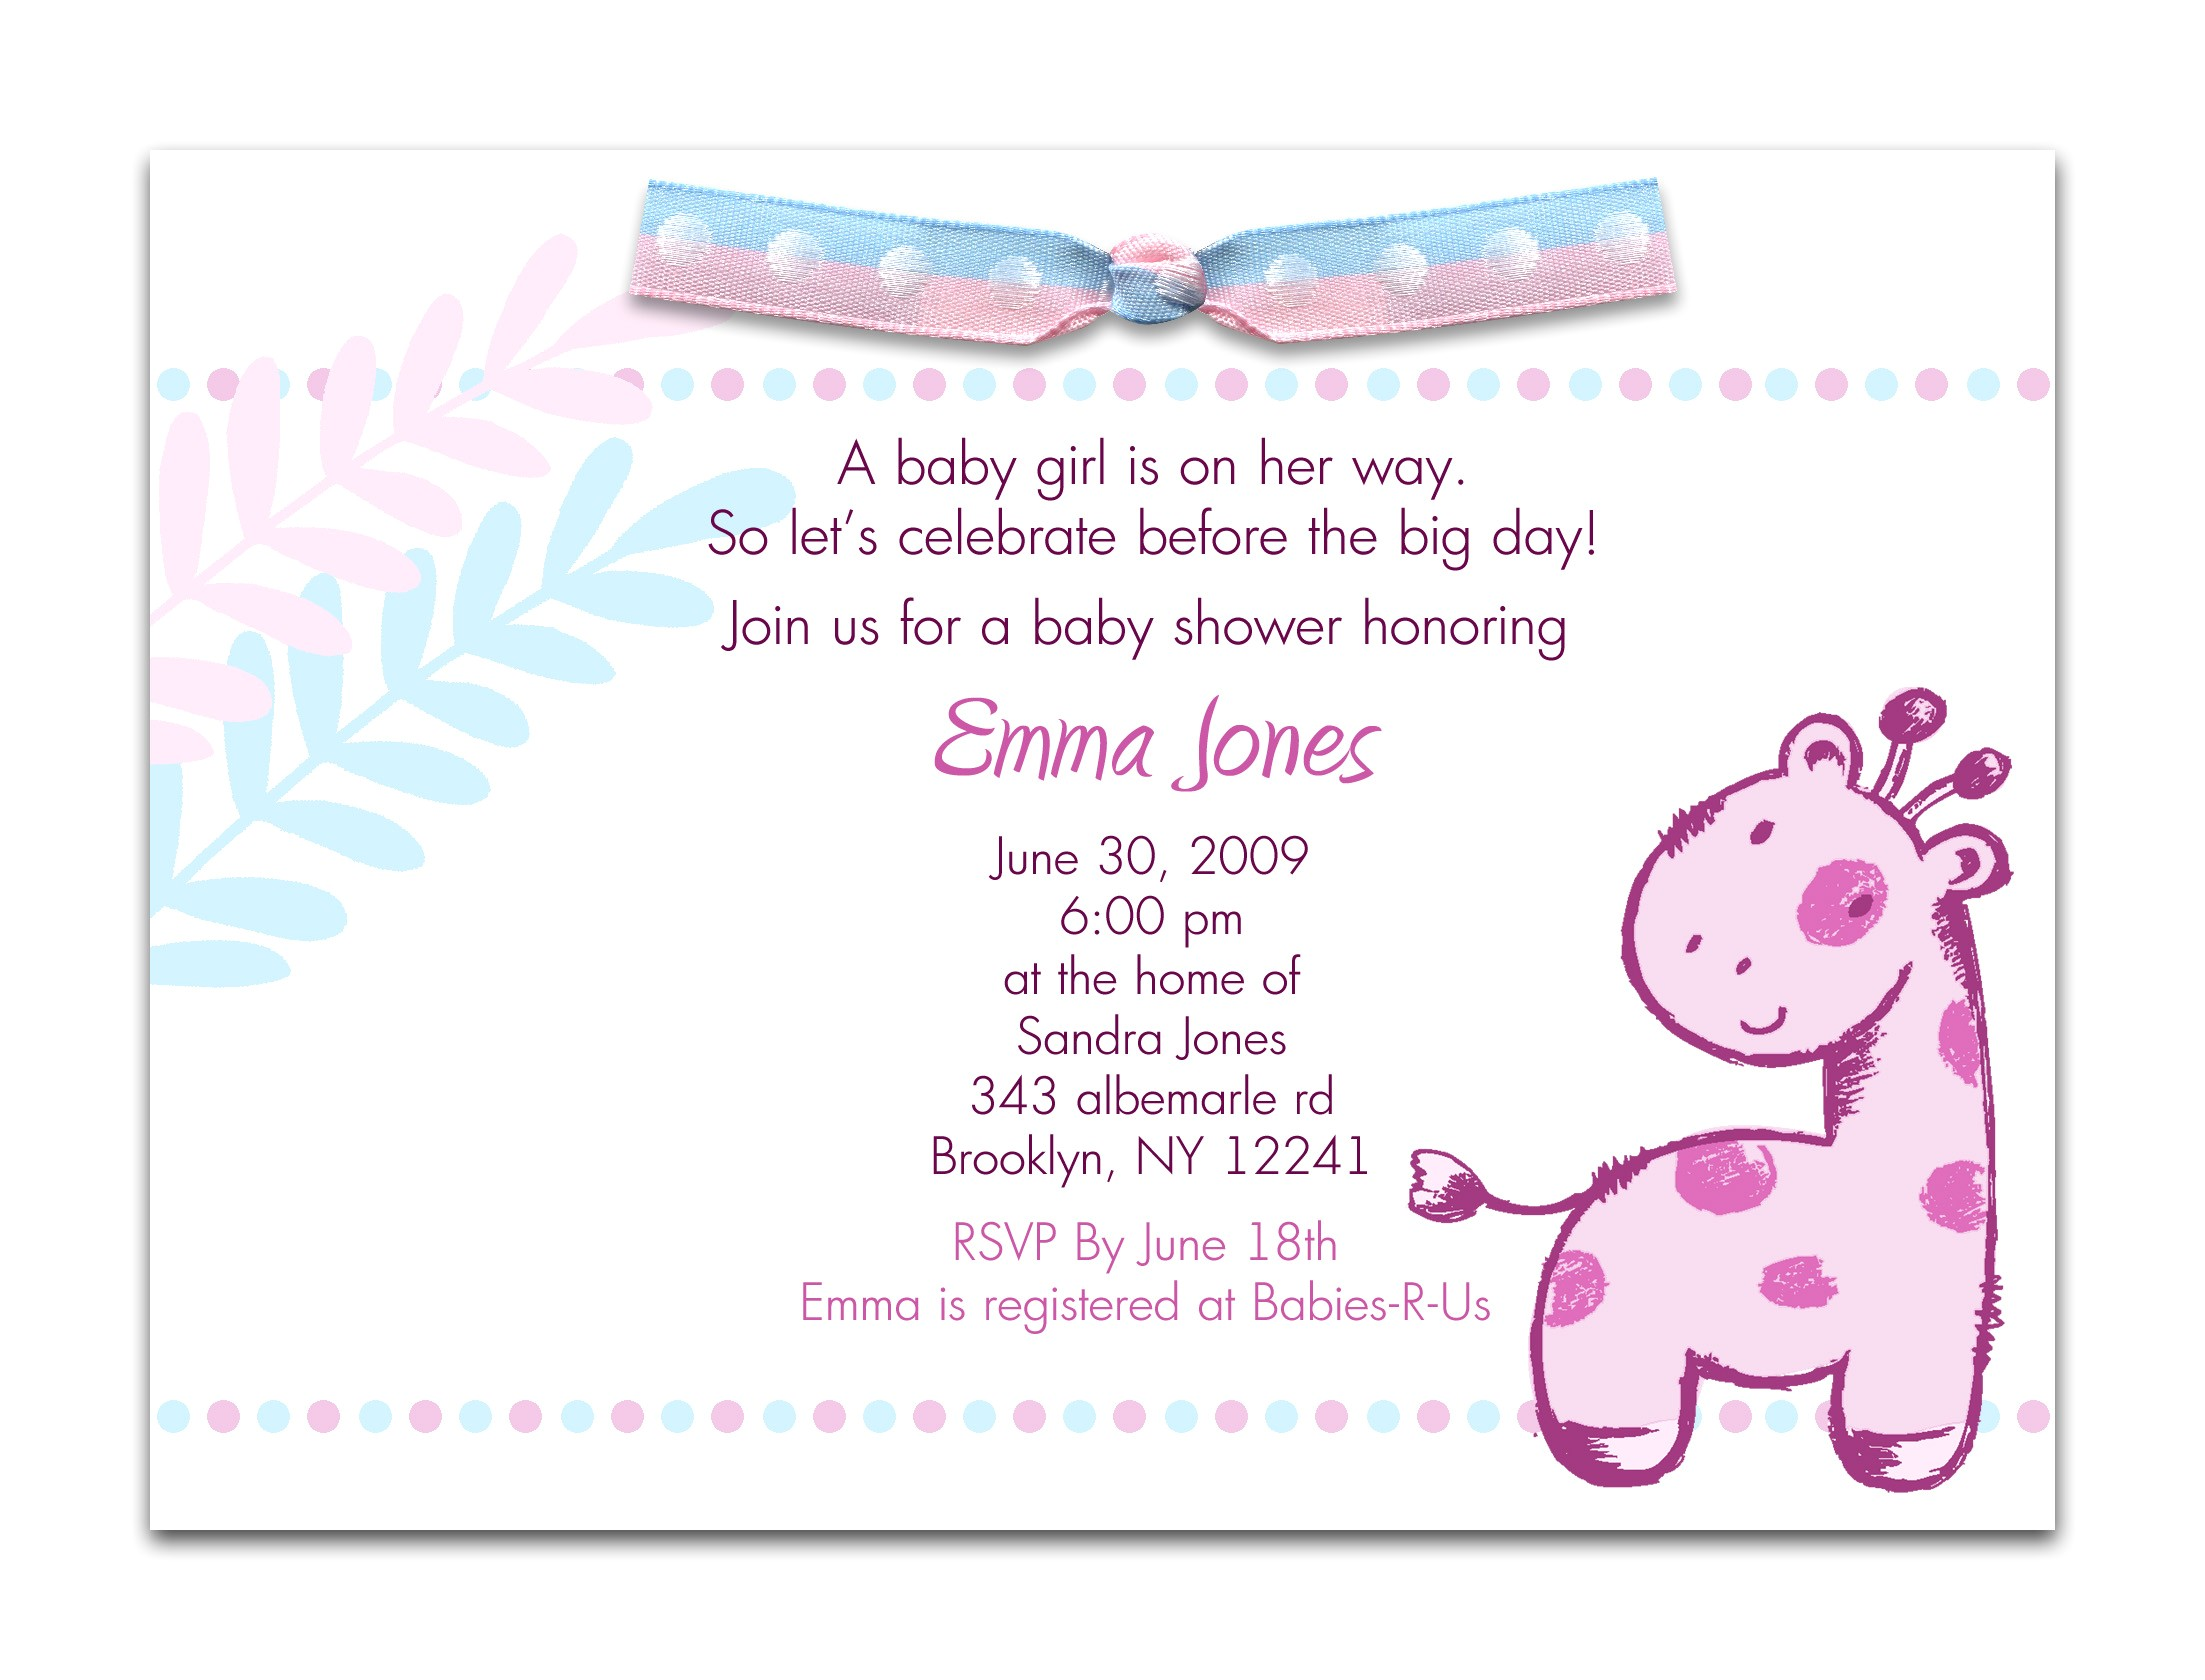 Invitation Wording for Baby Shower Baby Shower Invitation Wording for A Girl